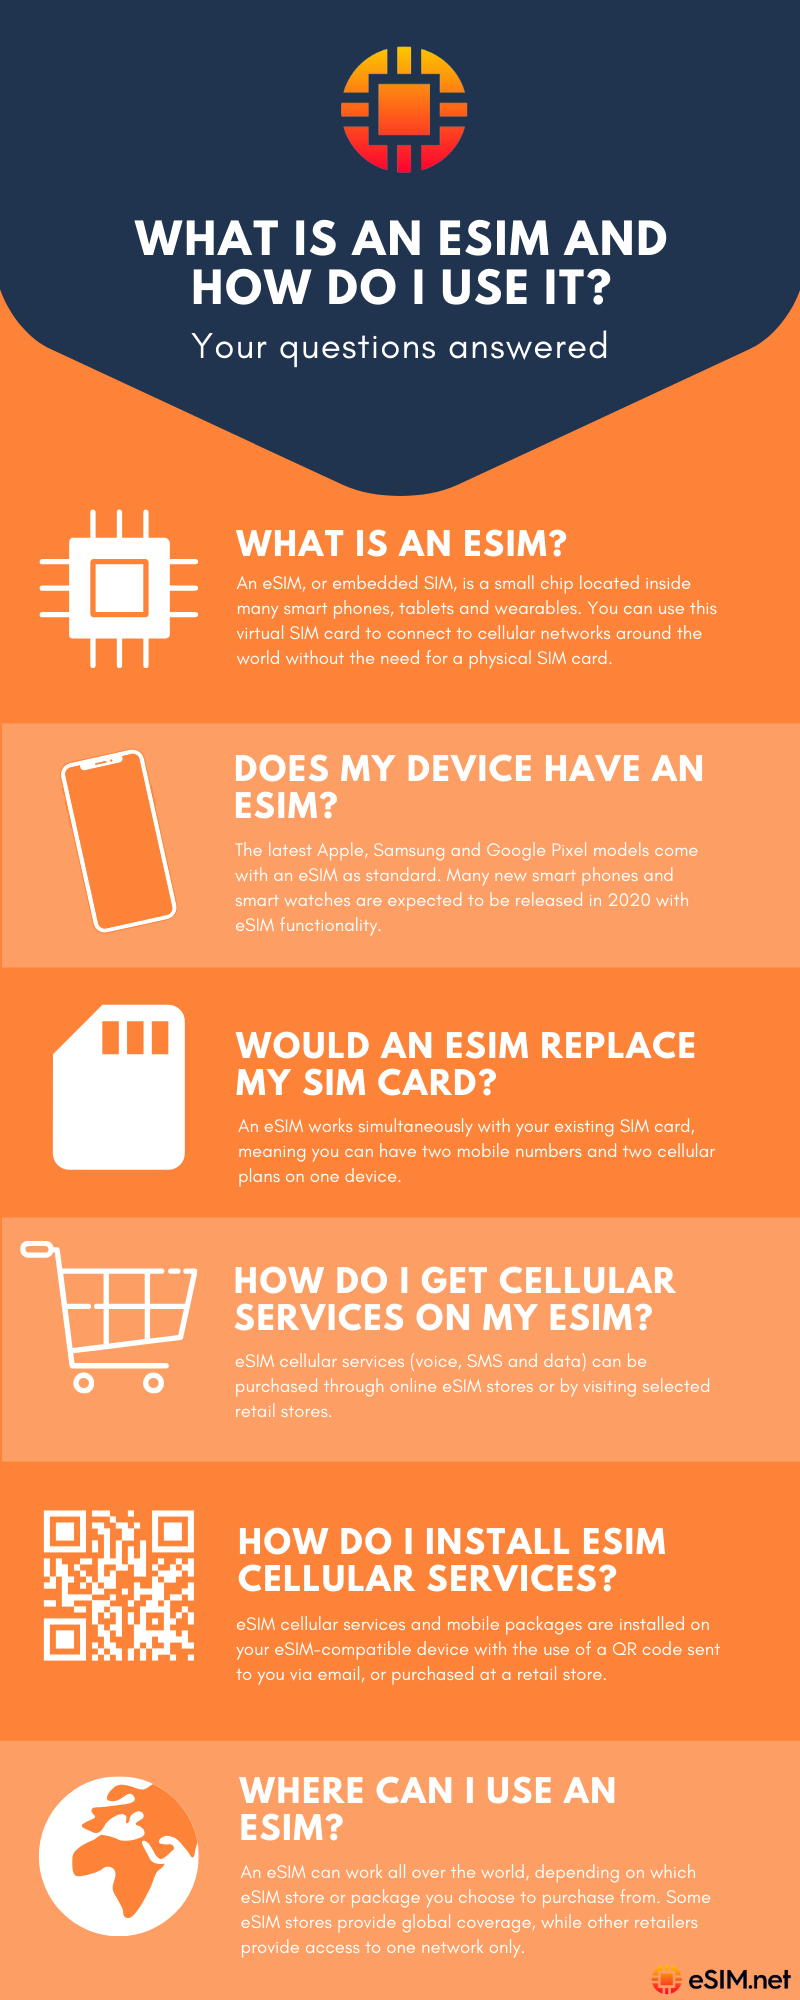 What is an eSIM? How Do I Use It?